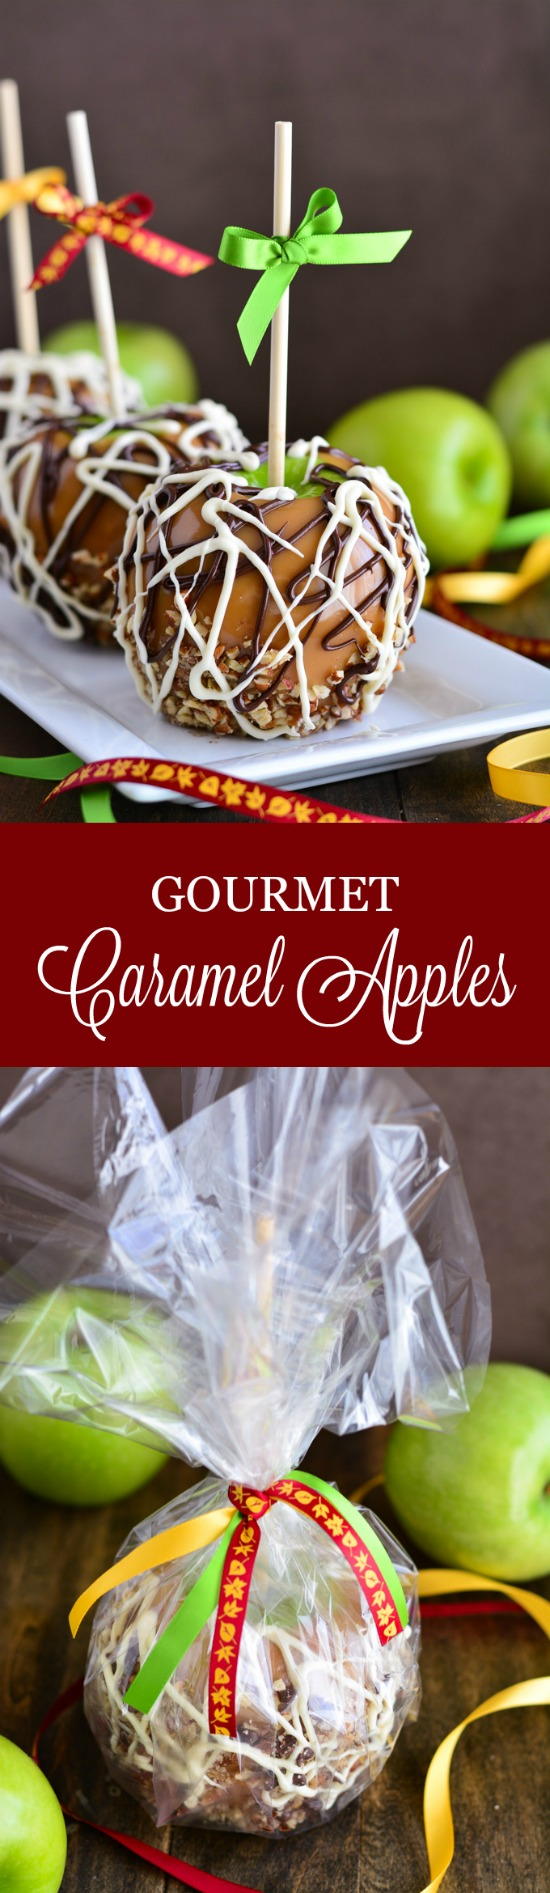 Nothing says fall quite like a homemade Gourmet Caramel Apple with smooth buttery made-from-scratch caramel!